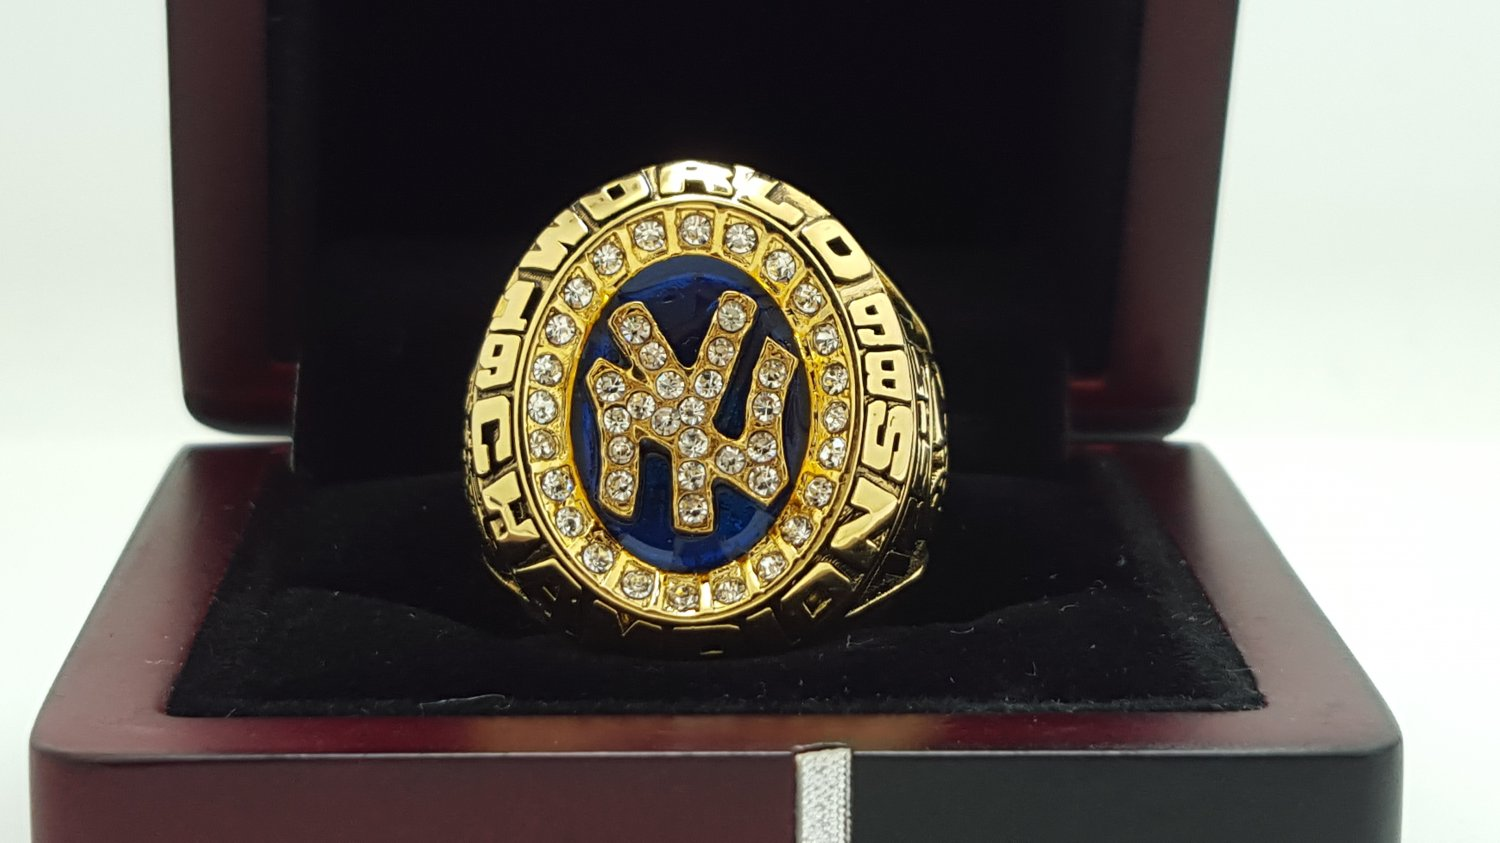 1998 New York Yankees world series Championship Ring Name Jeter 11 Size With wooden box